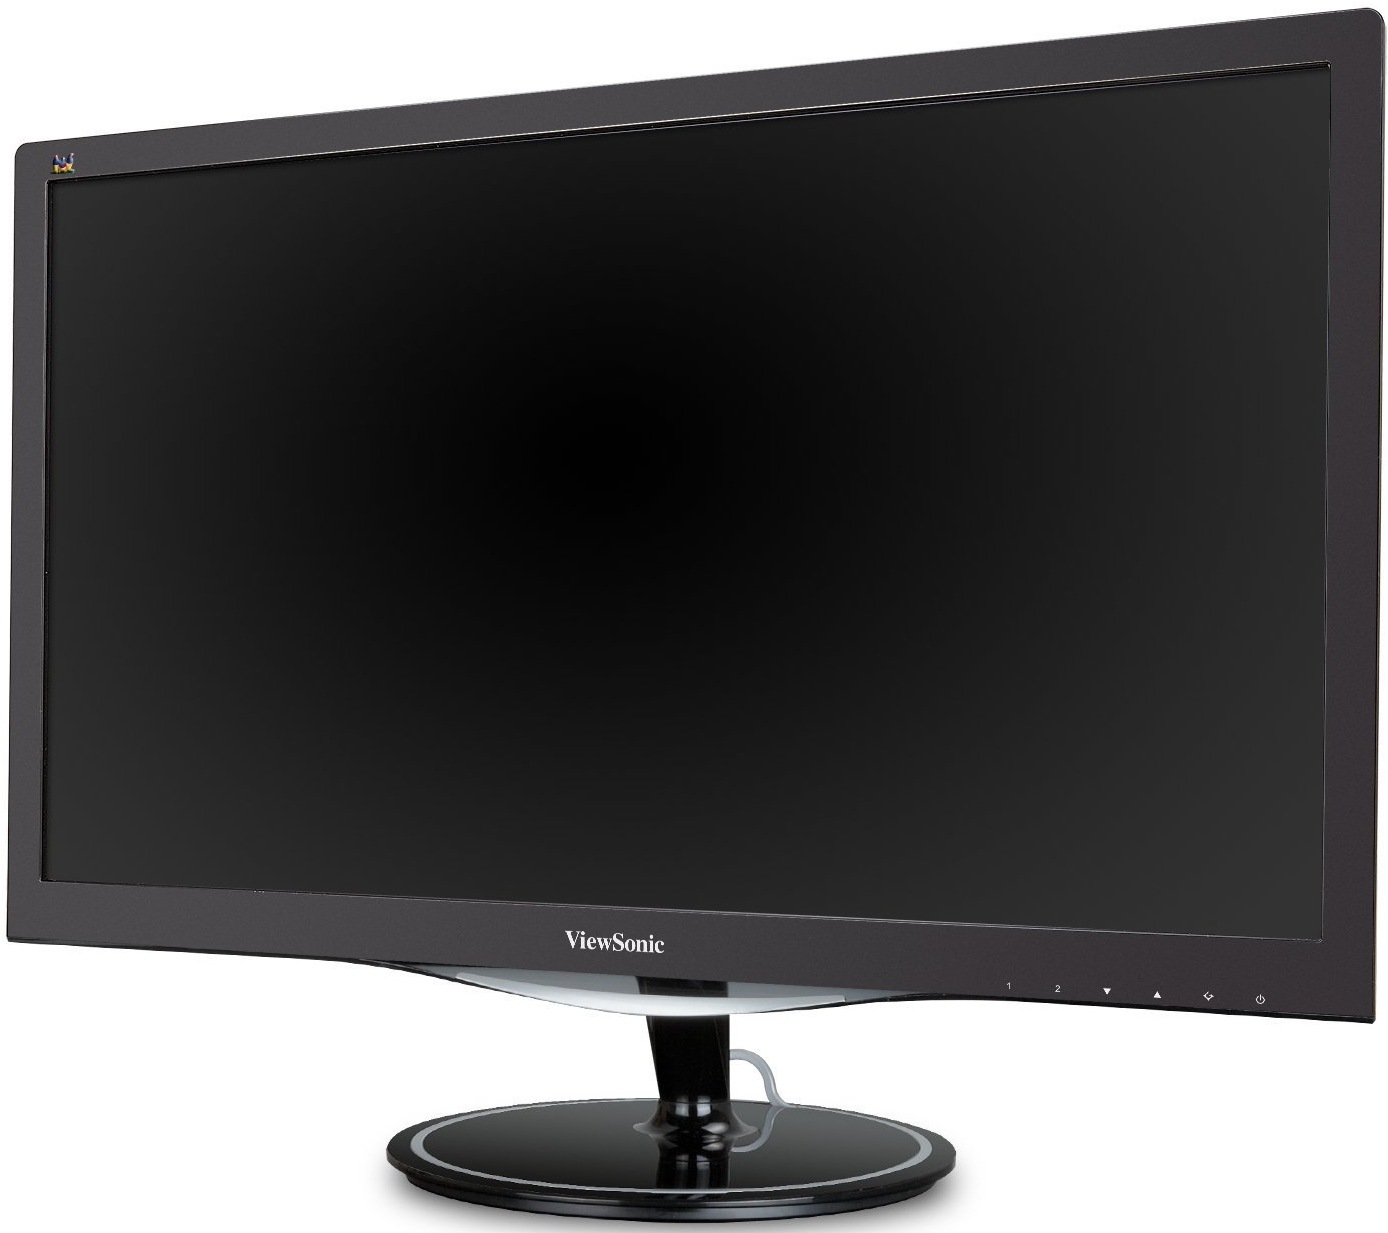 27 viewsonic 75hz 1ms freesync gaming monitor at mighty ape nz. Black Bedroom Furniture Sets. Home Design Ideas